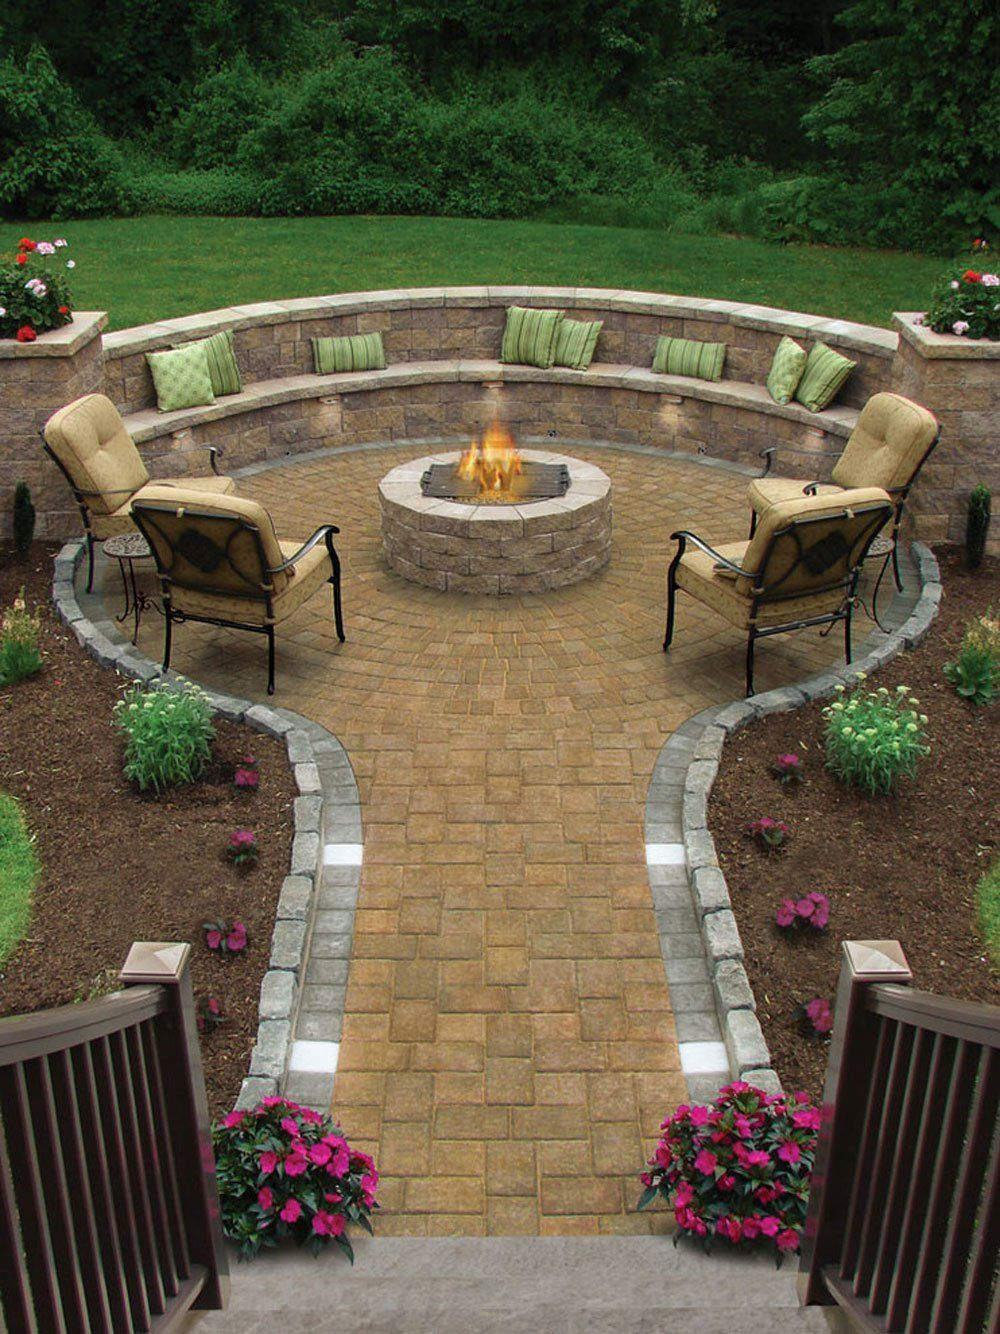 17 Of The Most Amazing Seating Area Around The Fire Pit Ever throughout Backyard Patio Ideas With Fire Pit